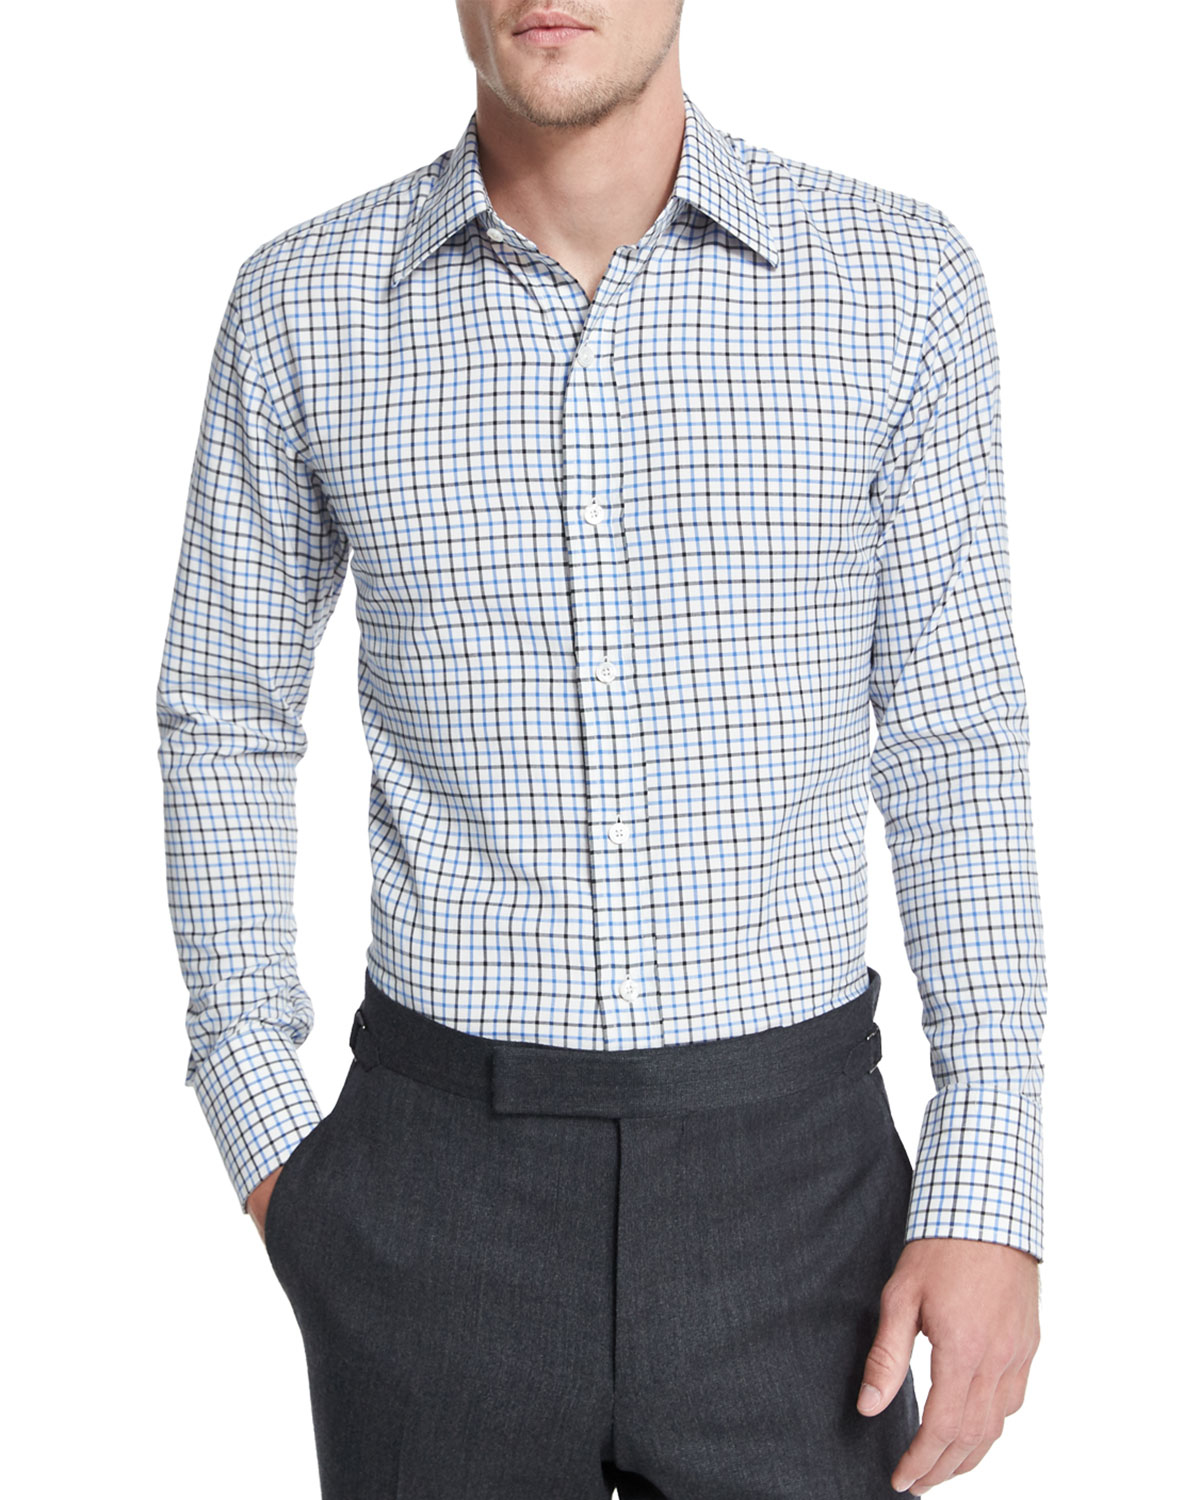 Tom Ford Tattersall Check Dress Shirt In Teal For Men